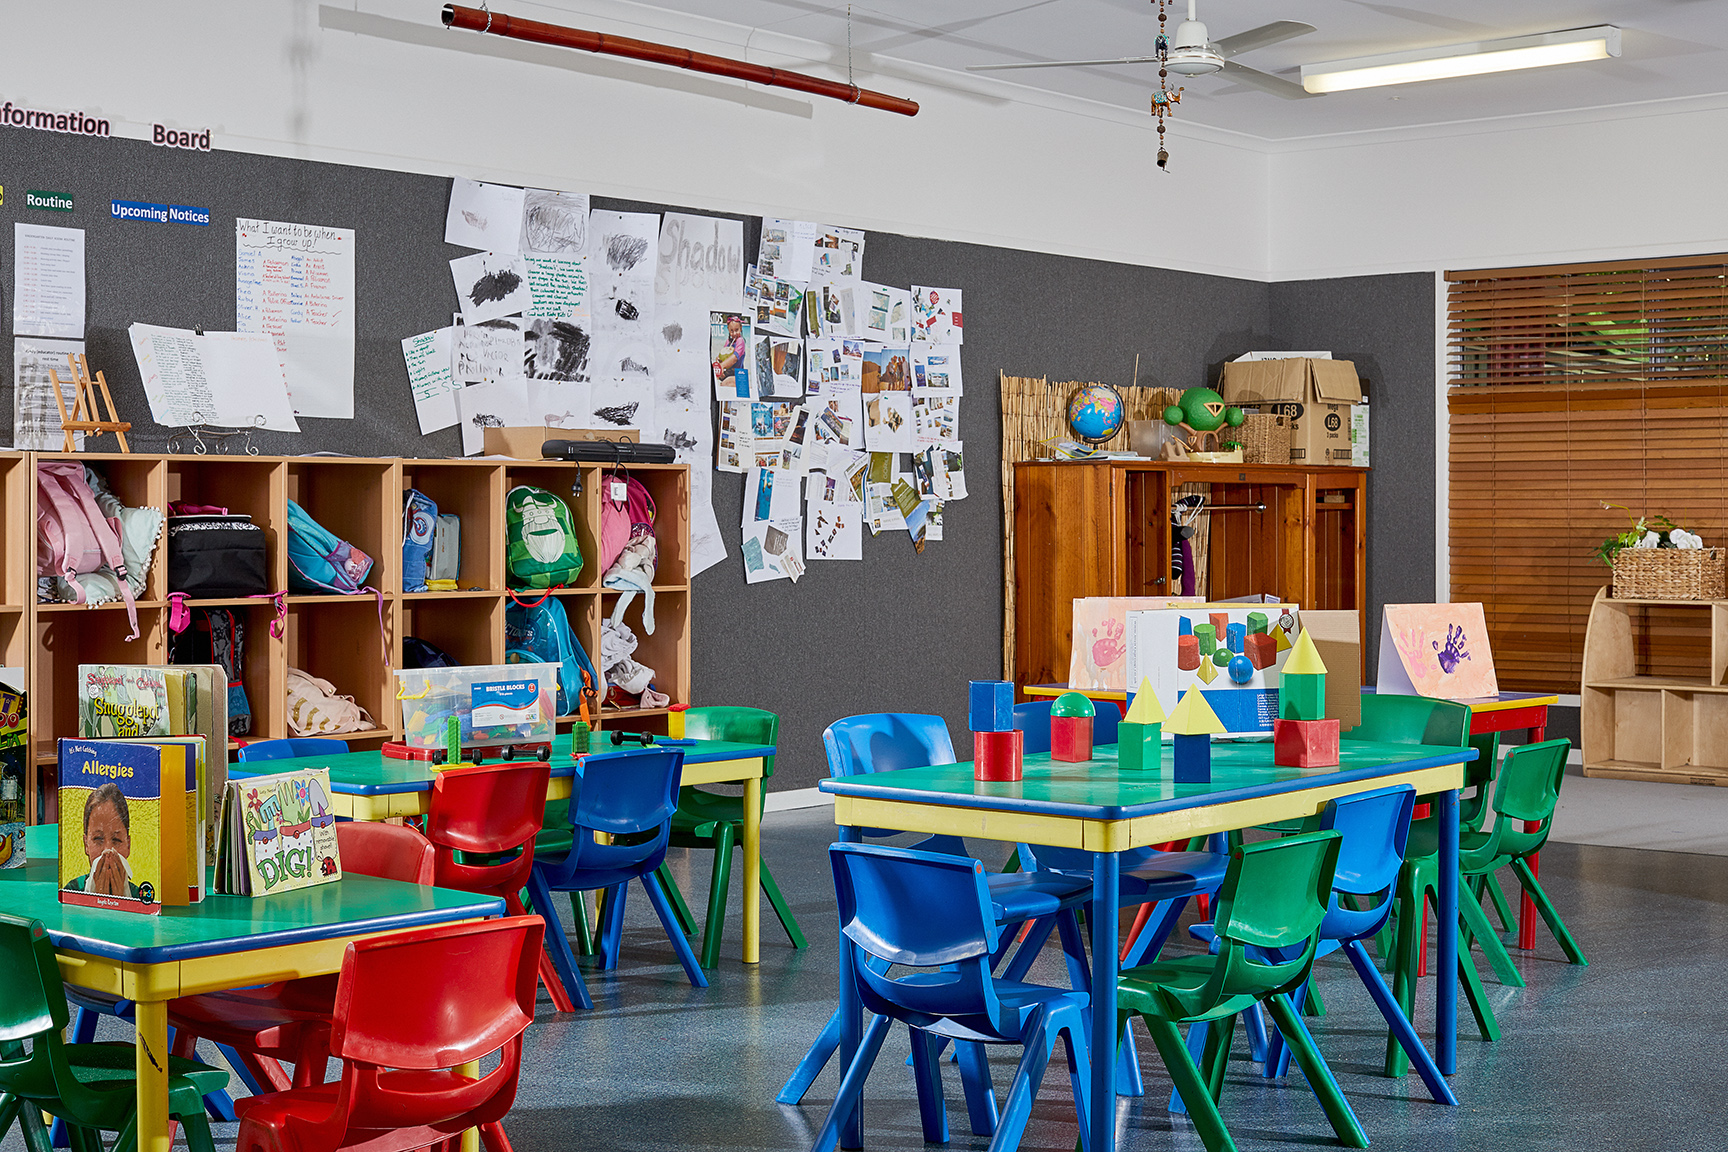 Child care centre room with toys setup on table